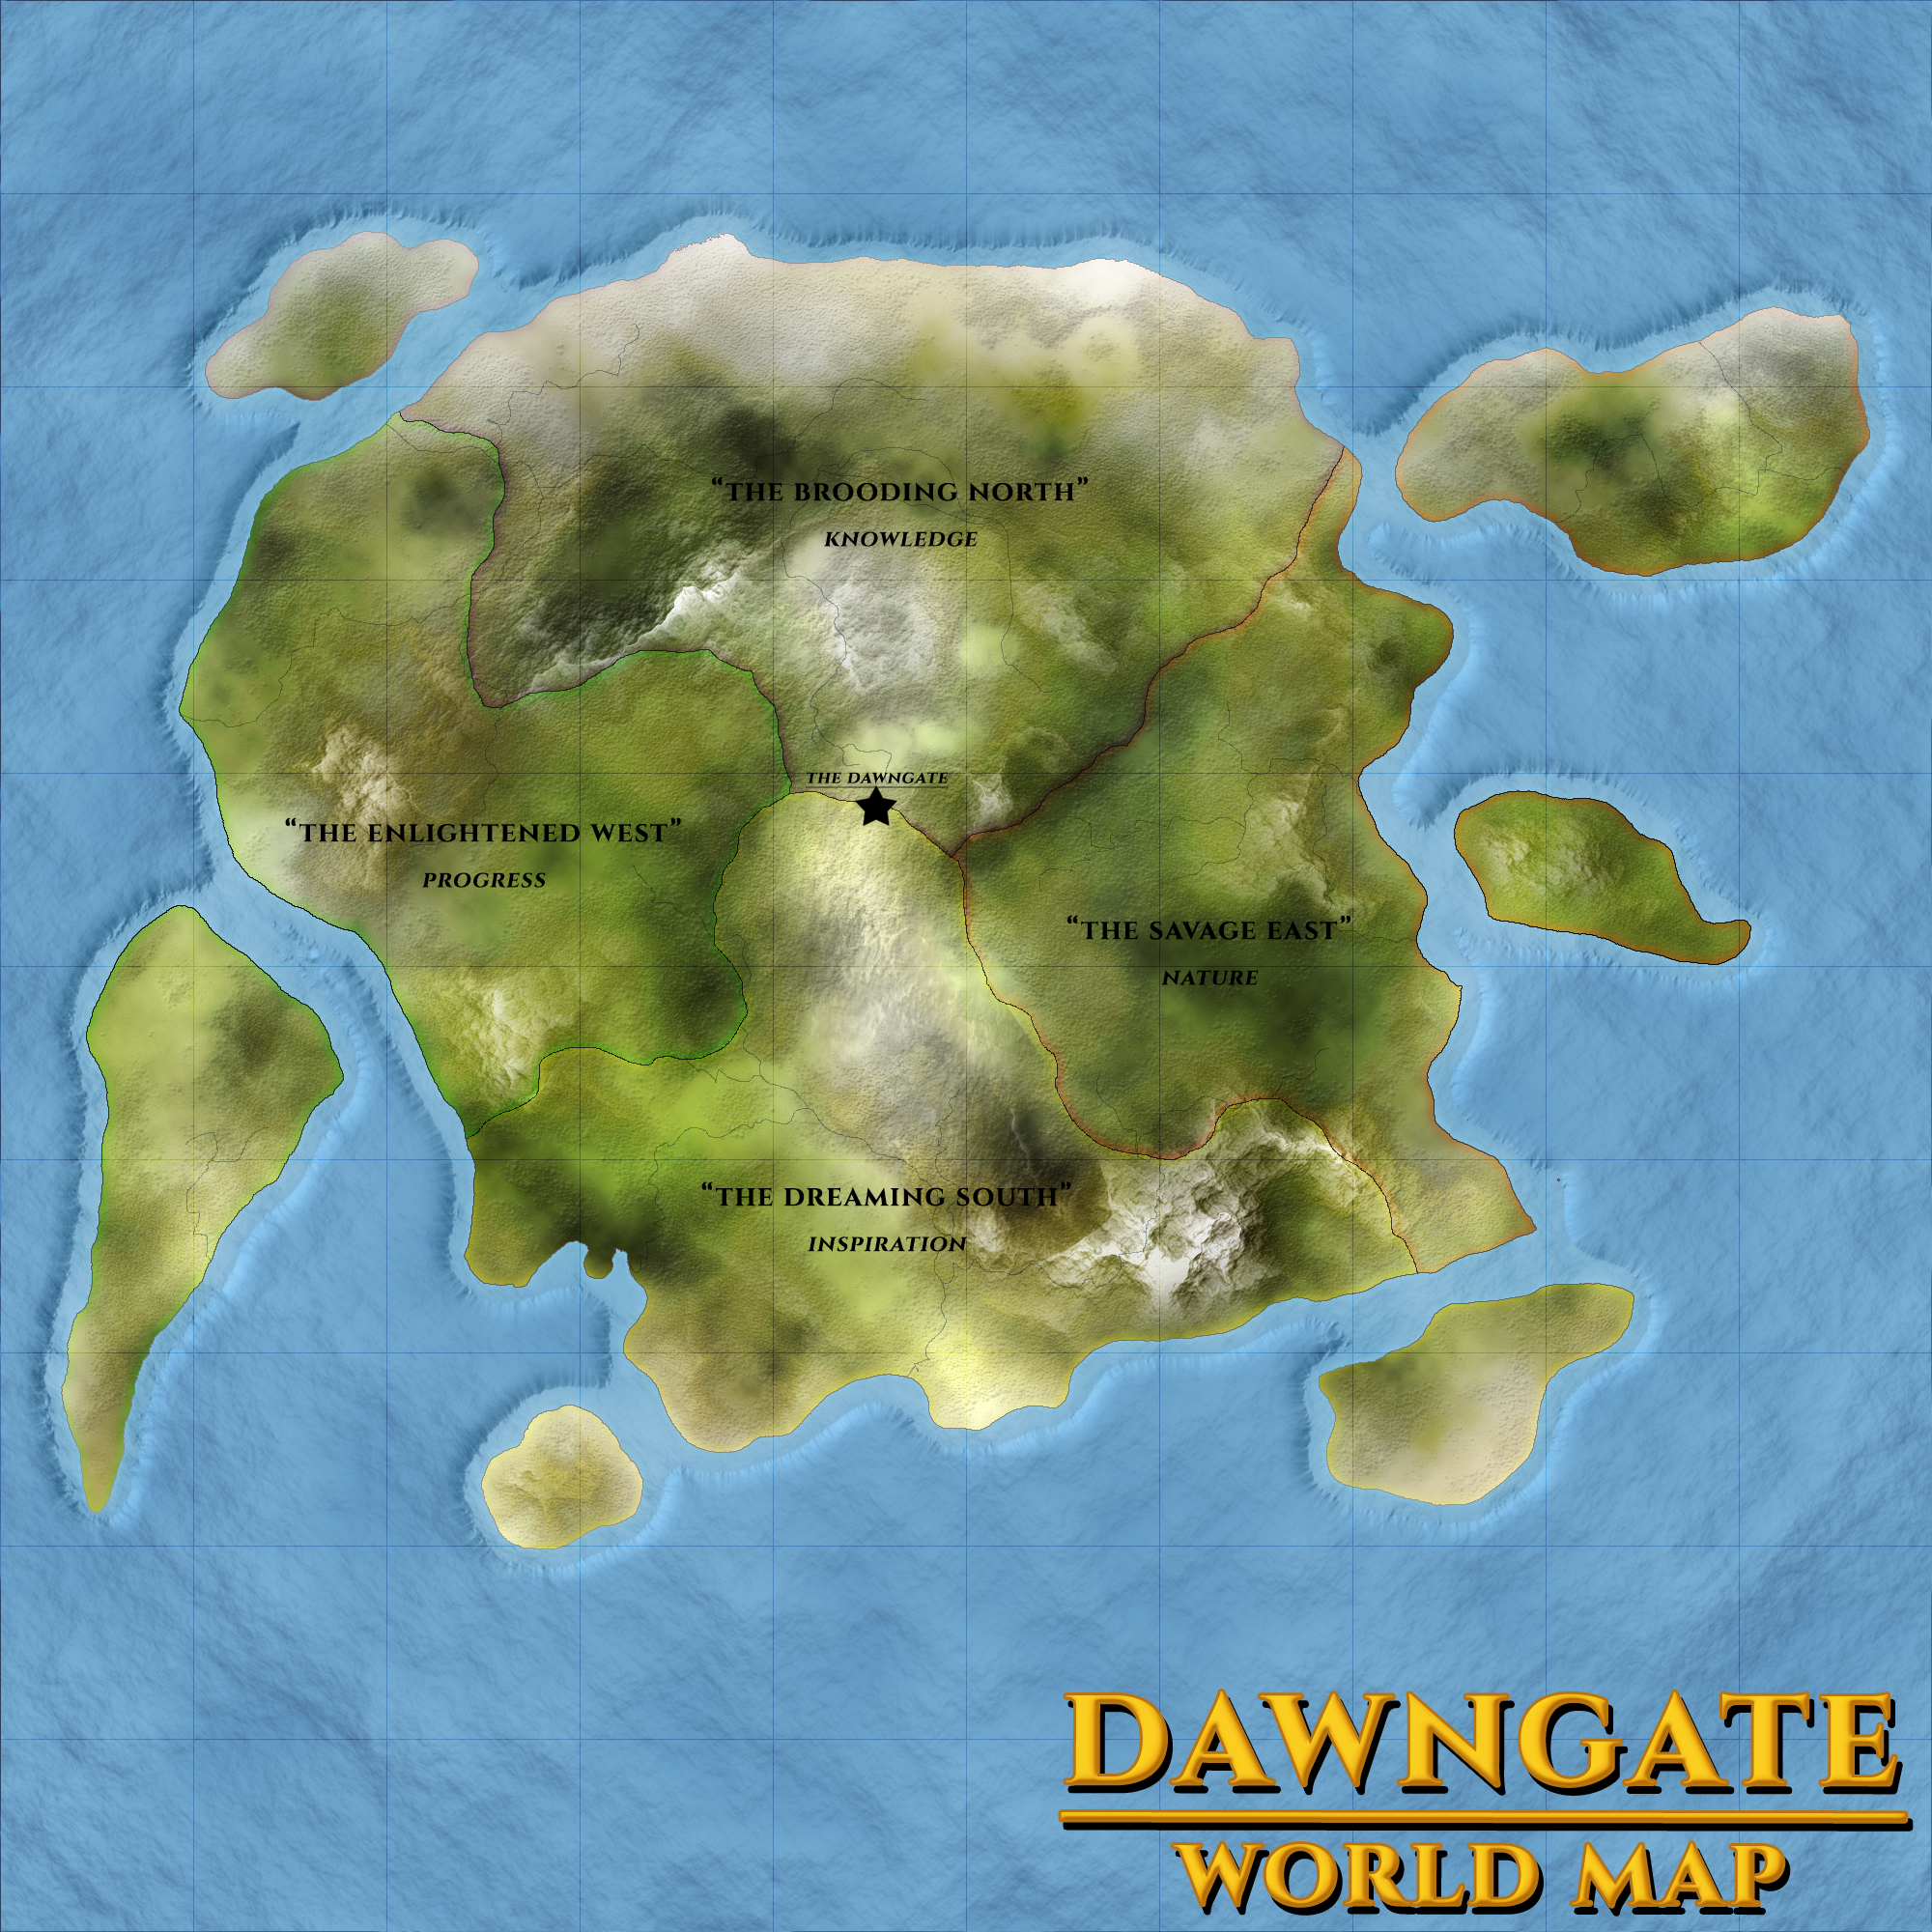 Dawngate World Map